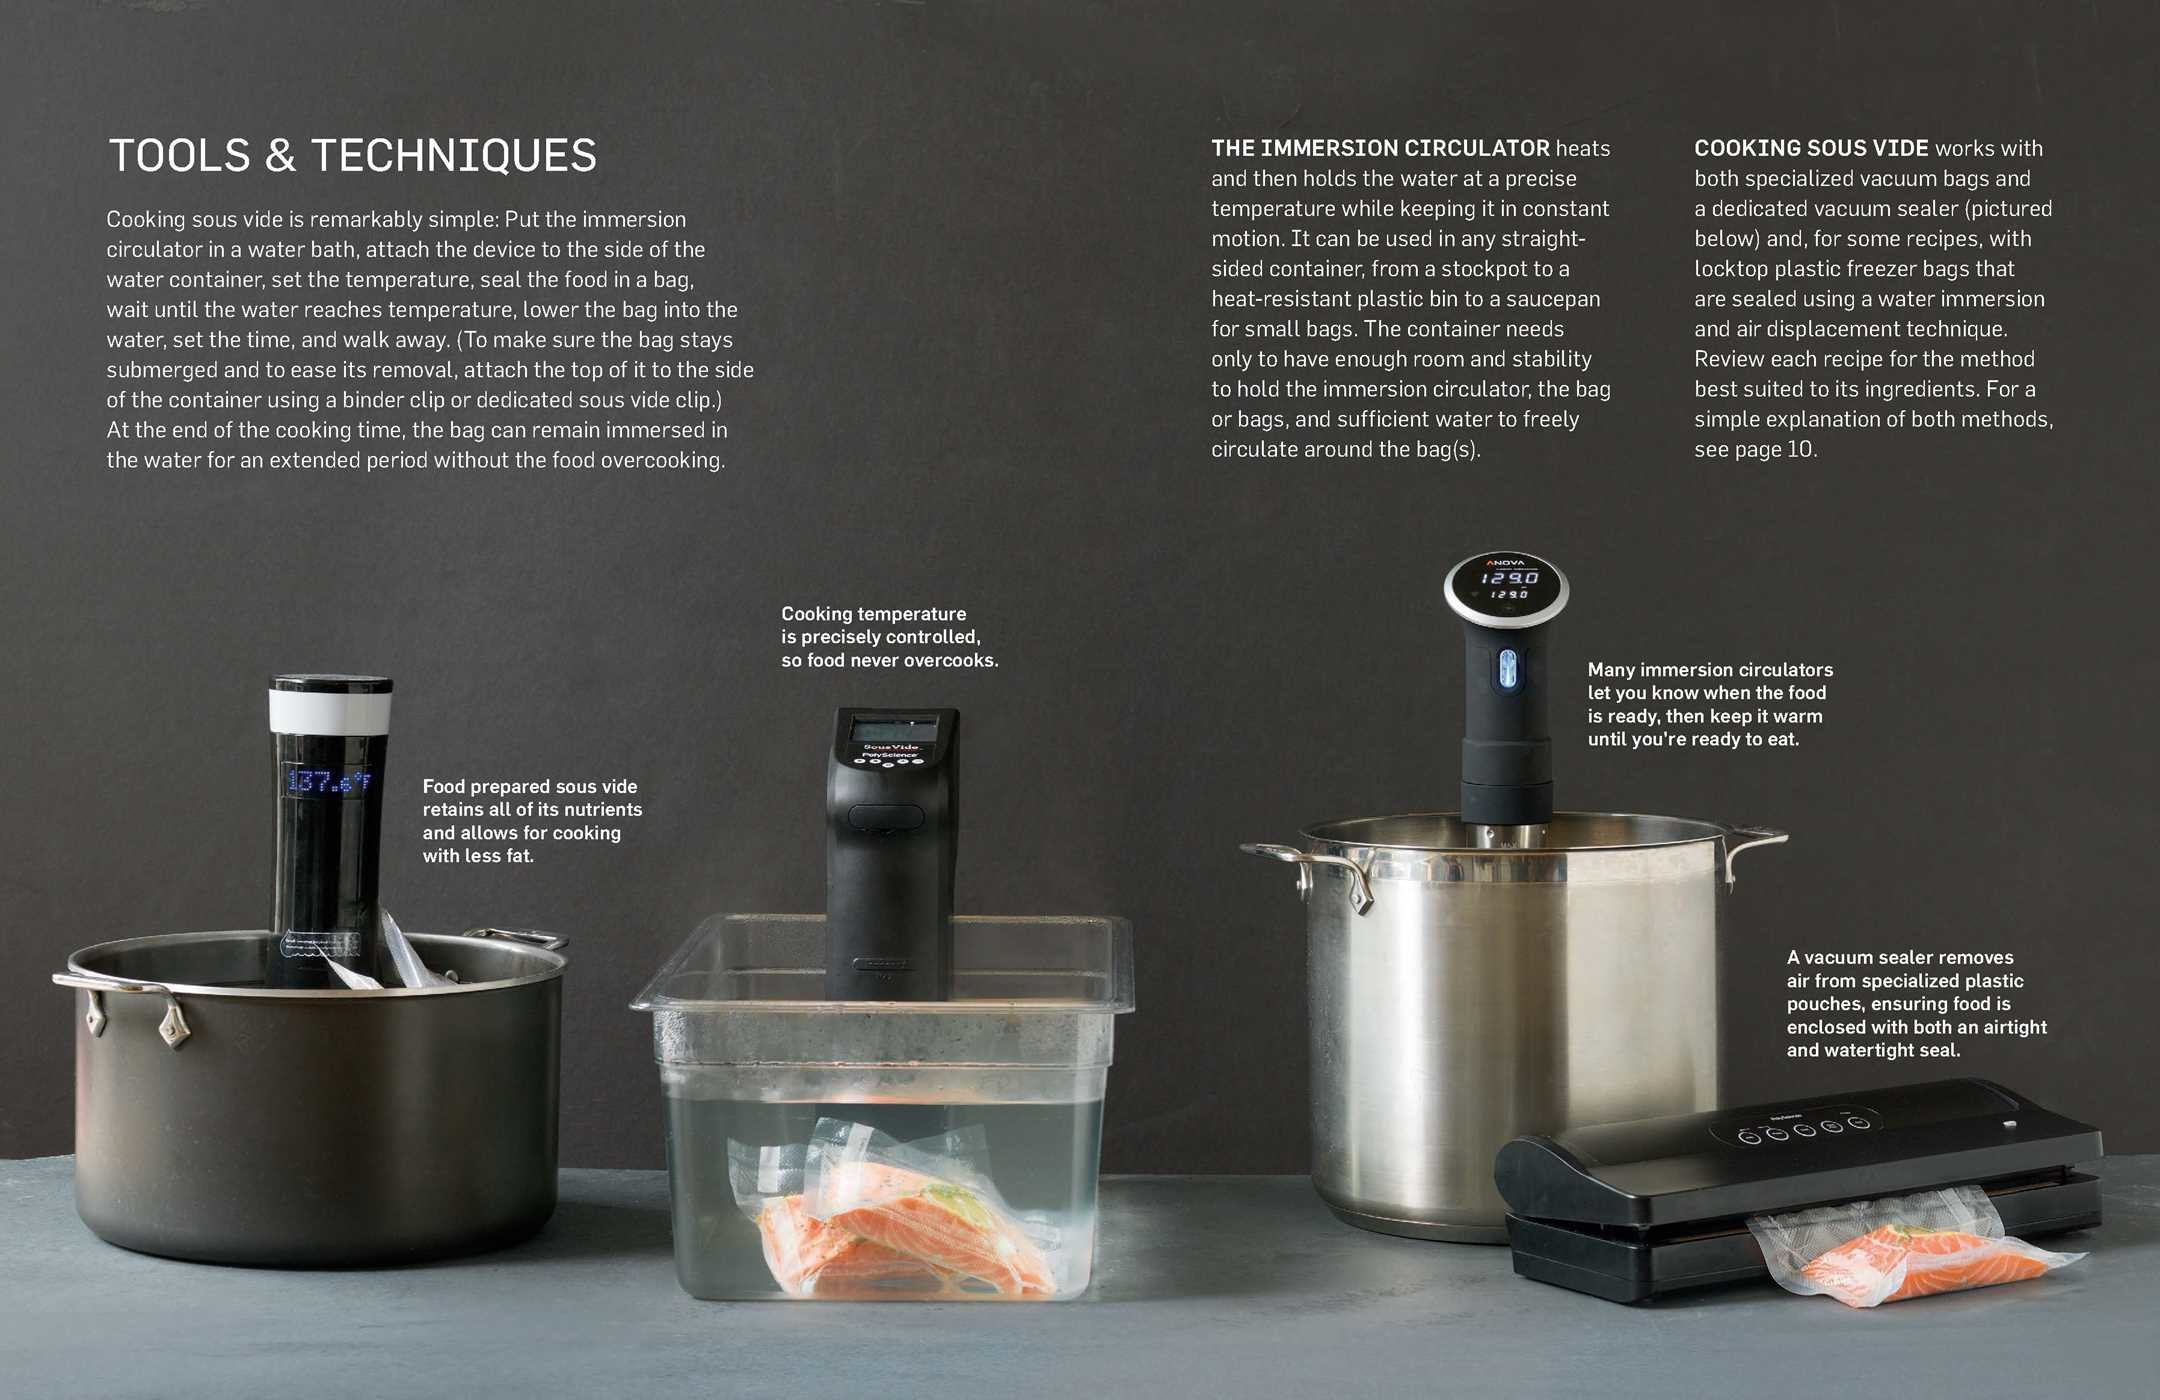 The sous vide cookbook 9781681883984.in01